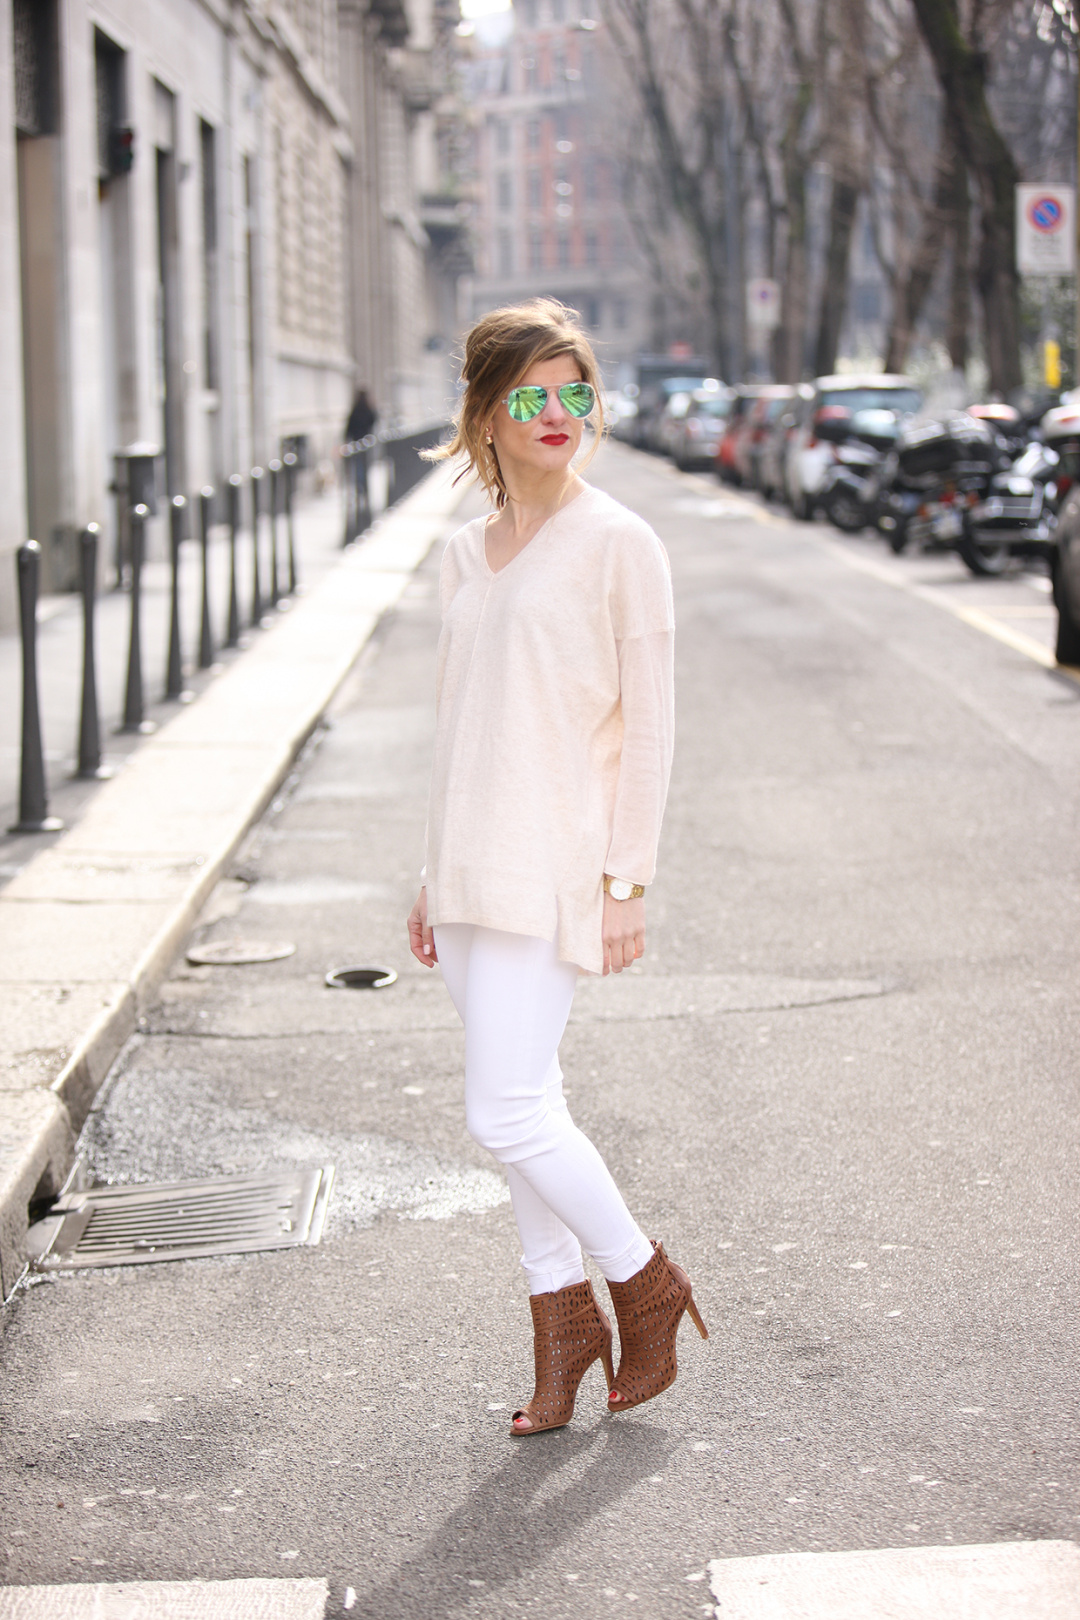 transitional fall look, spring outfit with white jeans, white jeans outfit, winter neutrals outfit, winter white outfit, wearing white after labor day, tone on tone outfit, white on white spring neutrals outfit